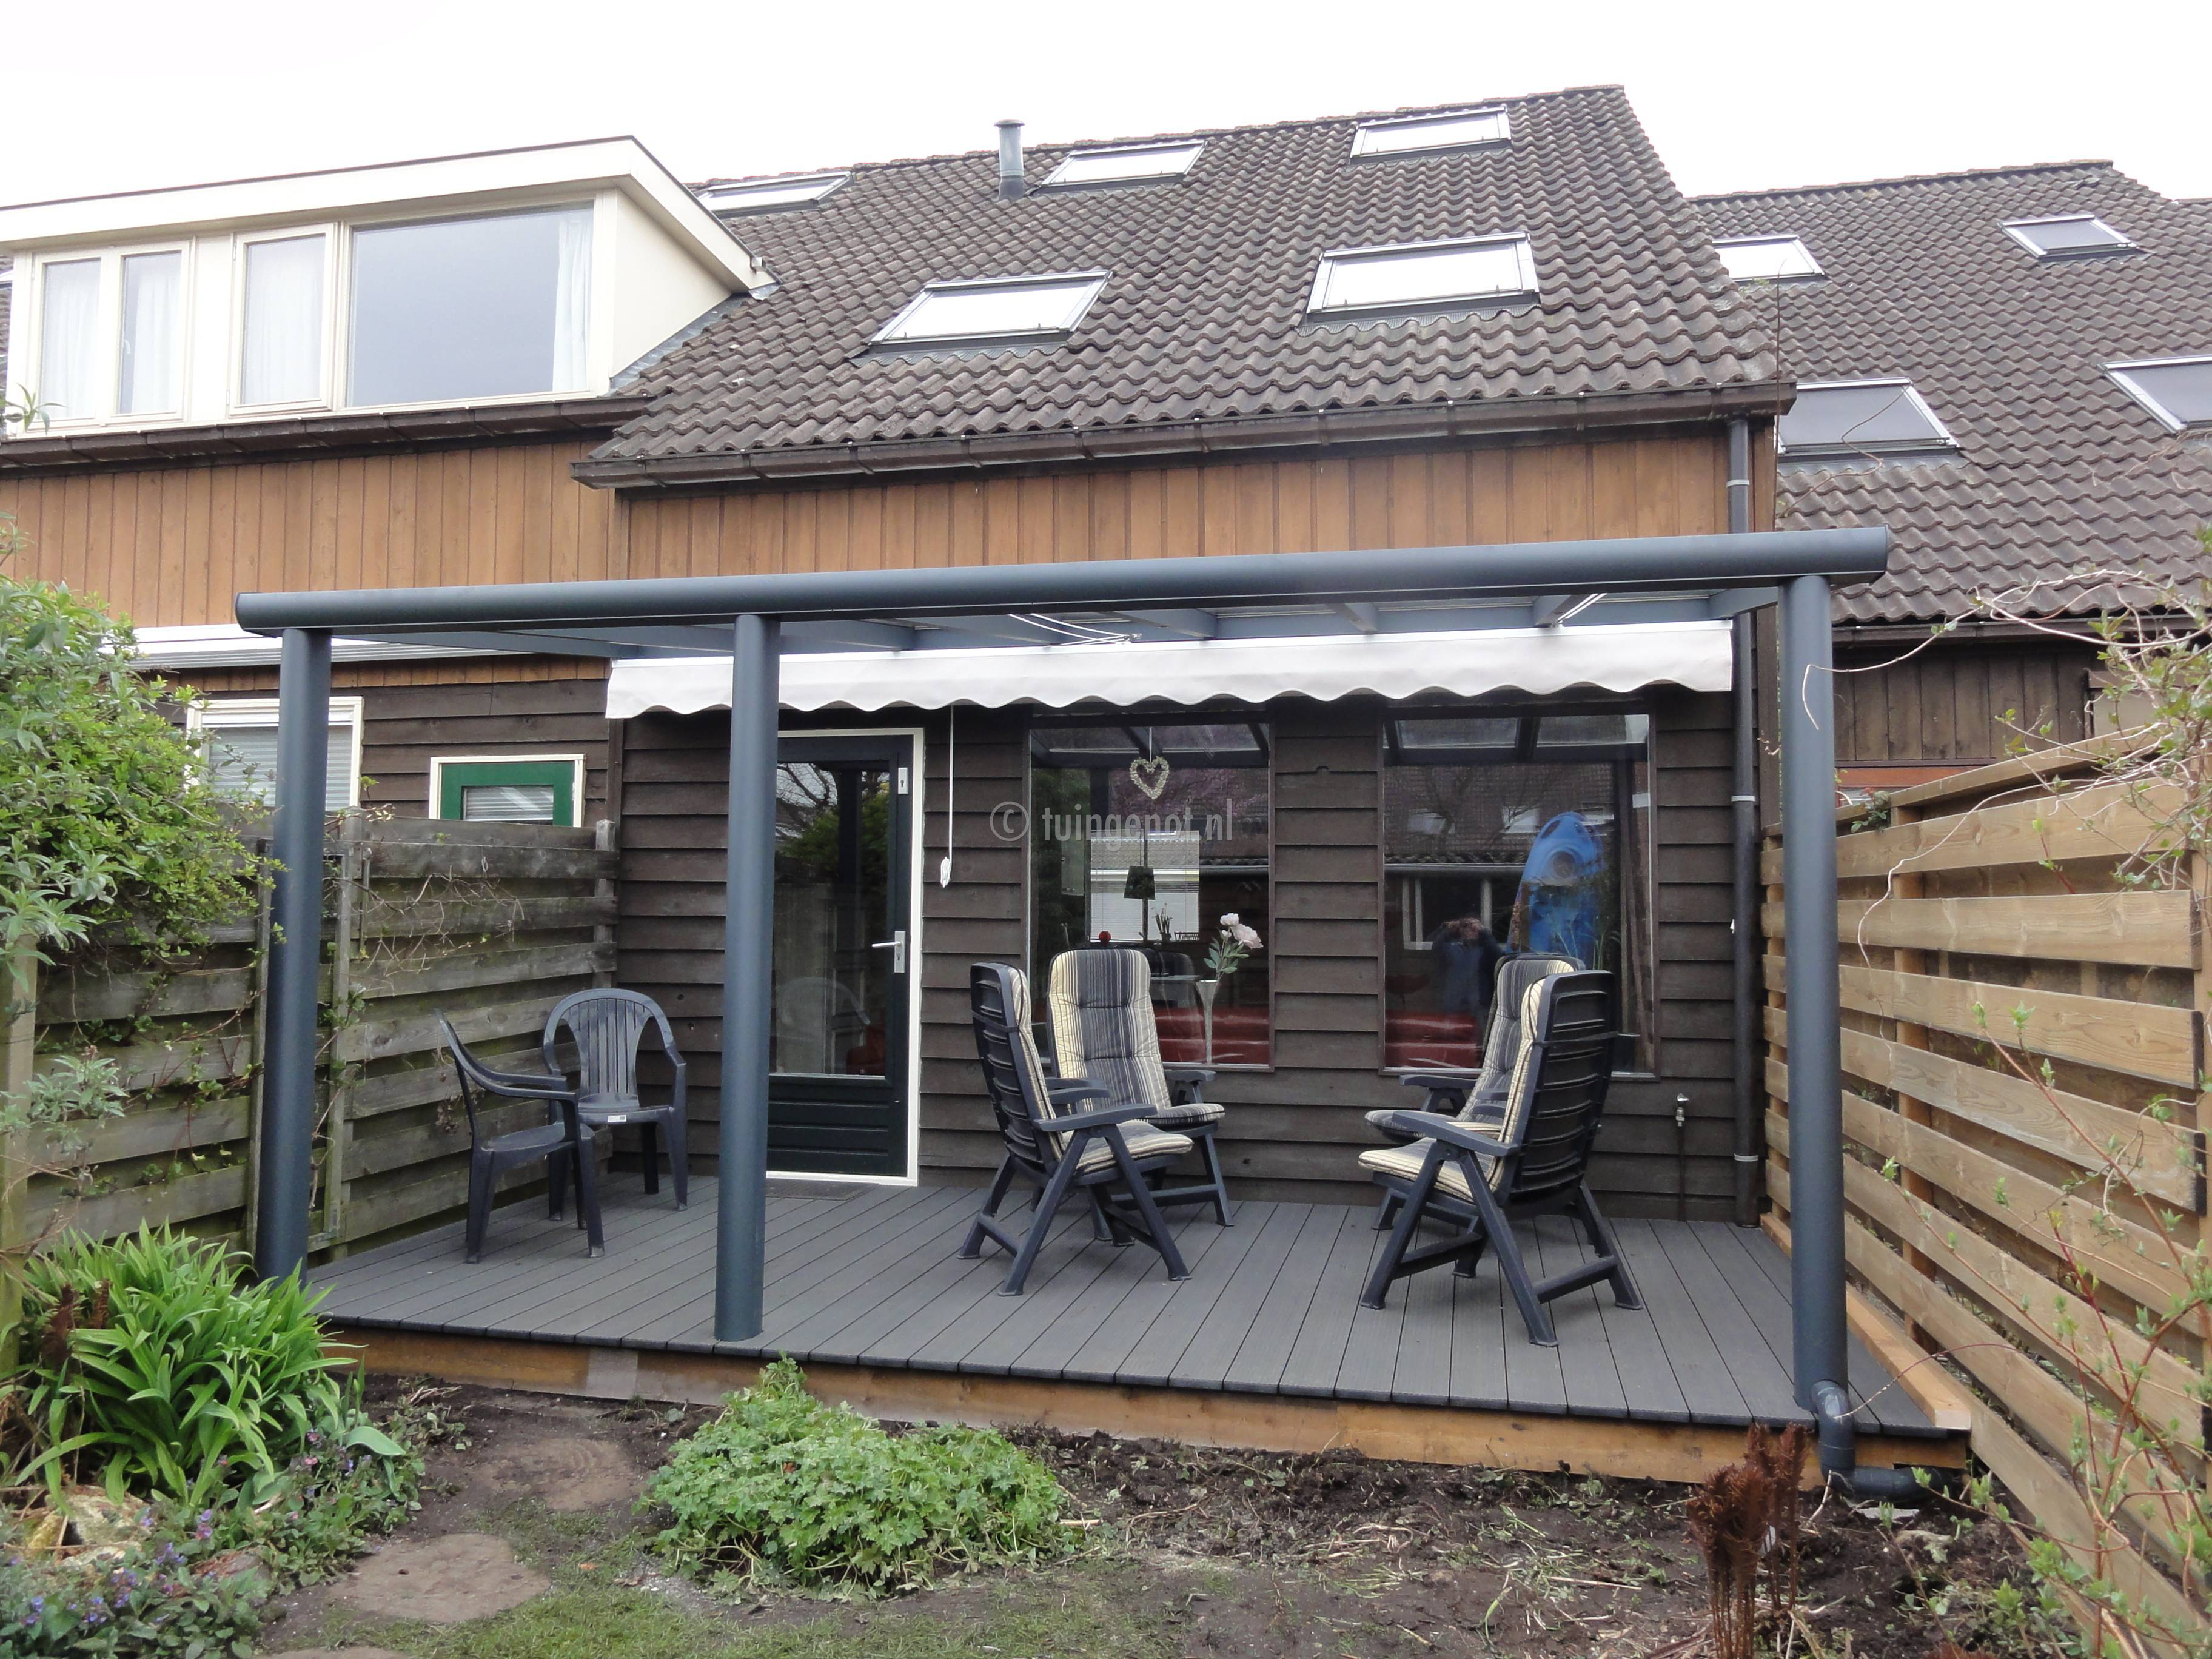 tuingenot aluminium veranda overkapping zelfbouw met polycarbonaatplaten of glazen dak systeem. Black Bedroom Furniture Sets. Home Design Ideas